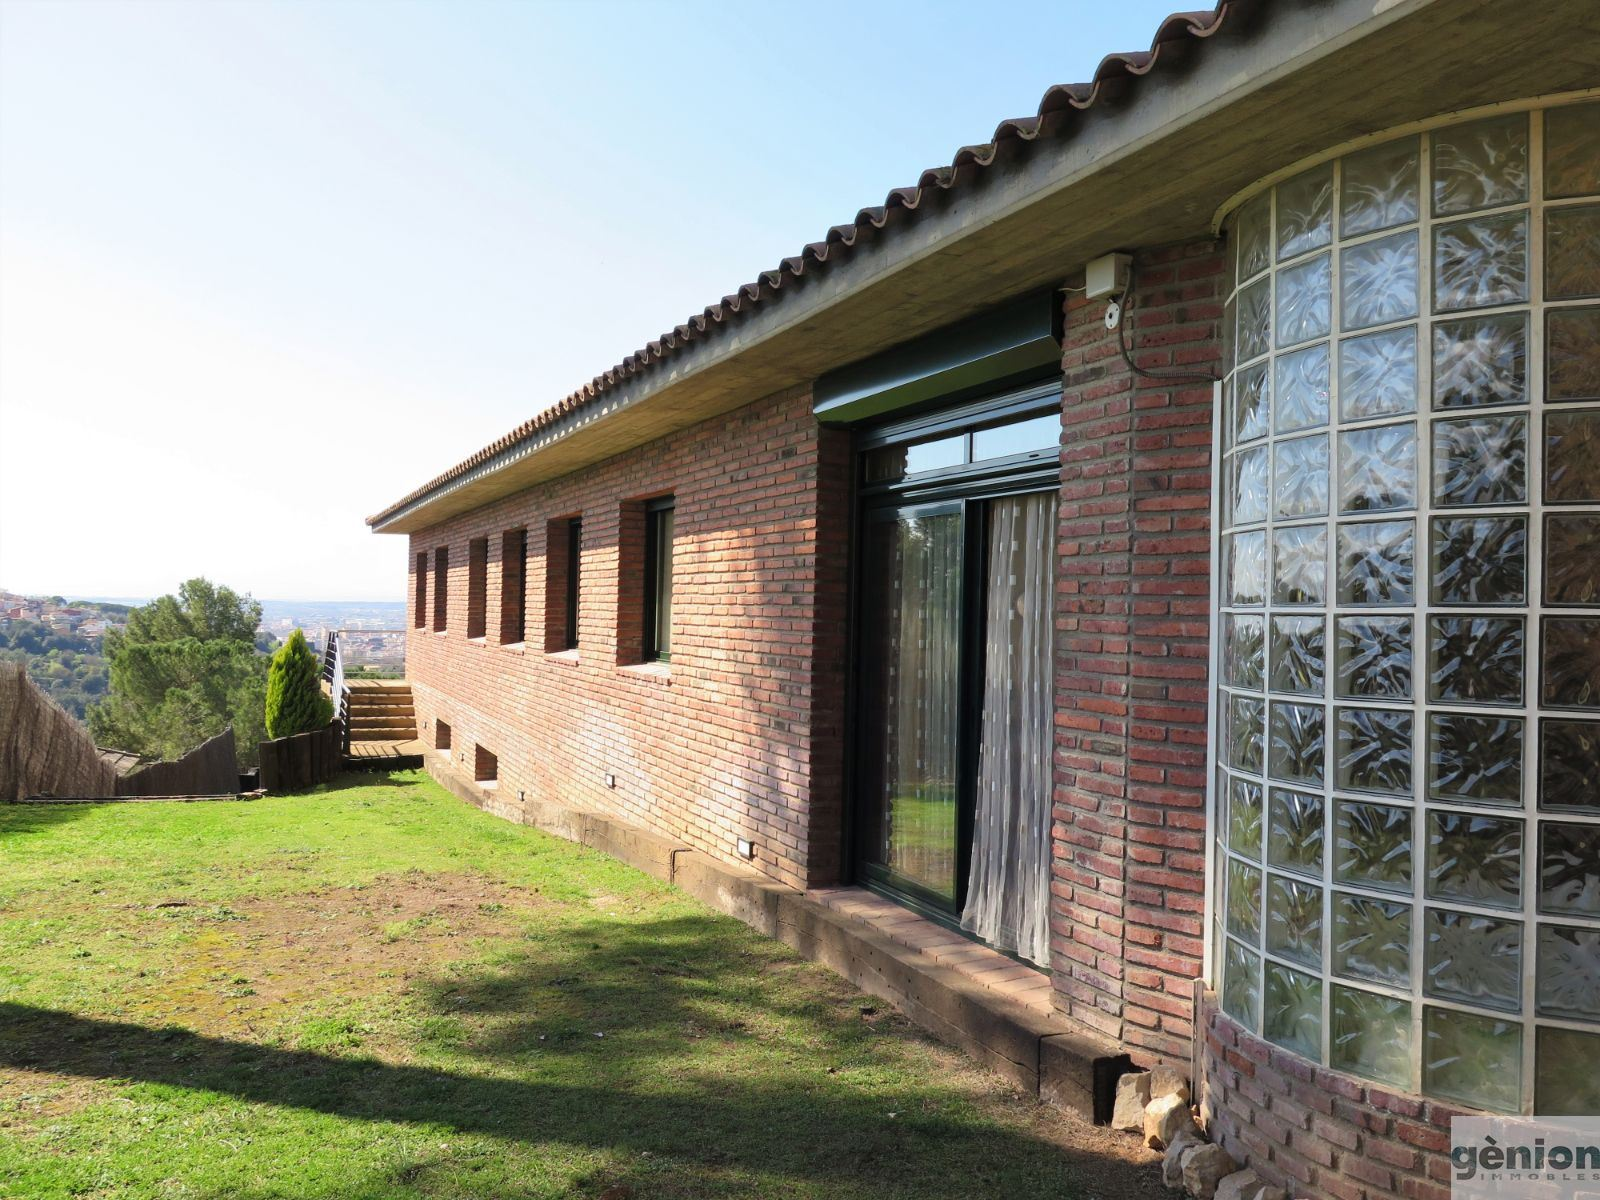 LUXURY HOUSE IN GIRONA'S MONTJUÏC DISTRICT. LIVING AREA OF 375 M², SUN AND VIEWS